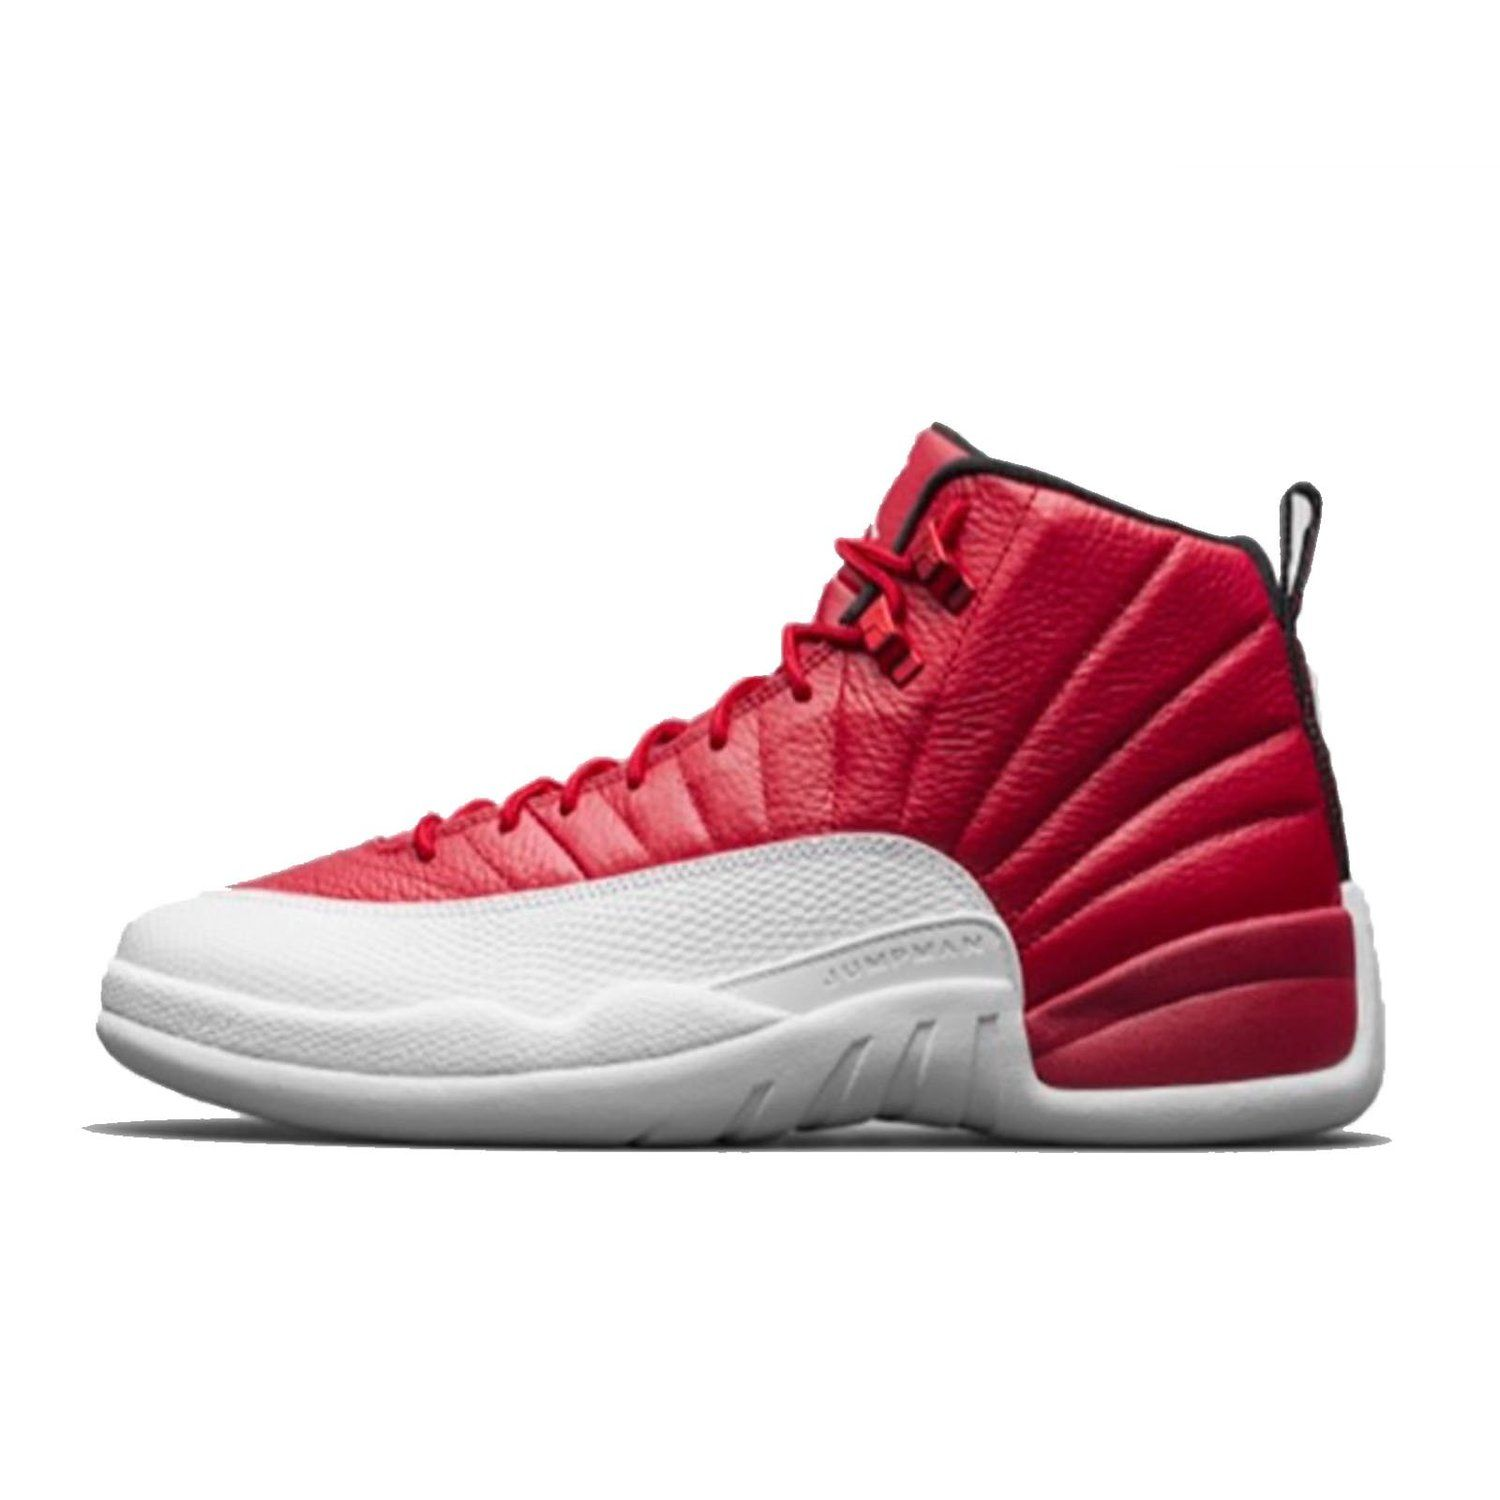 Buy Nike Kids Air Jordan 12 Retro BG Basketball Shoes: Shop top fashion  brands Basketball at ✓ FREE DELIVERY and Returns possible on eligible  purchases